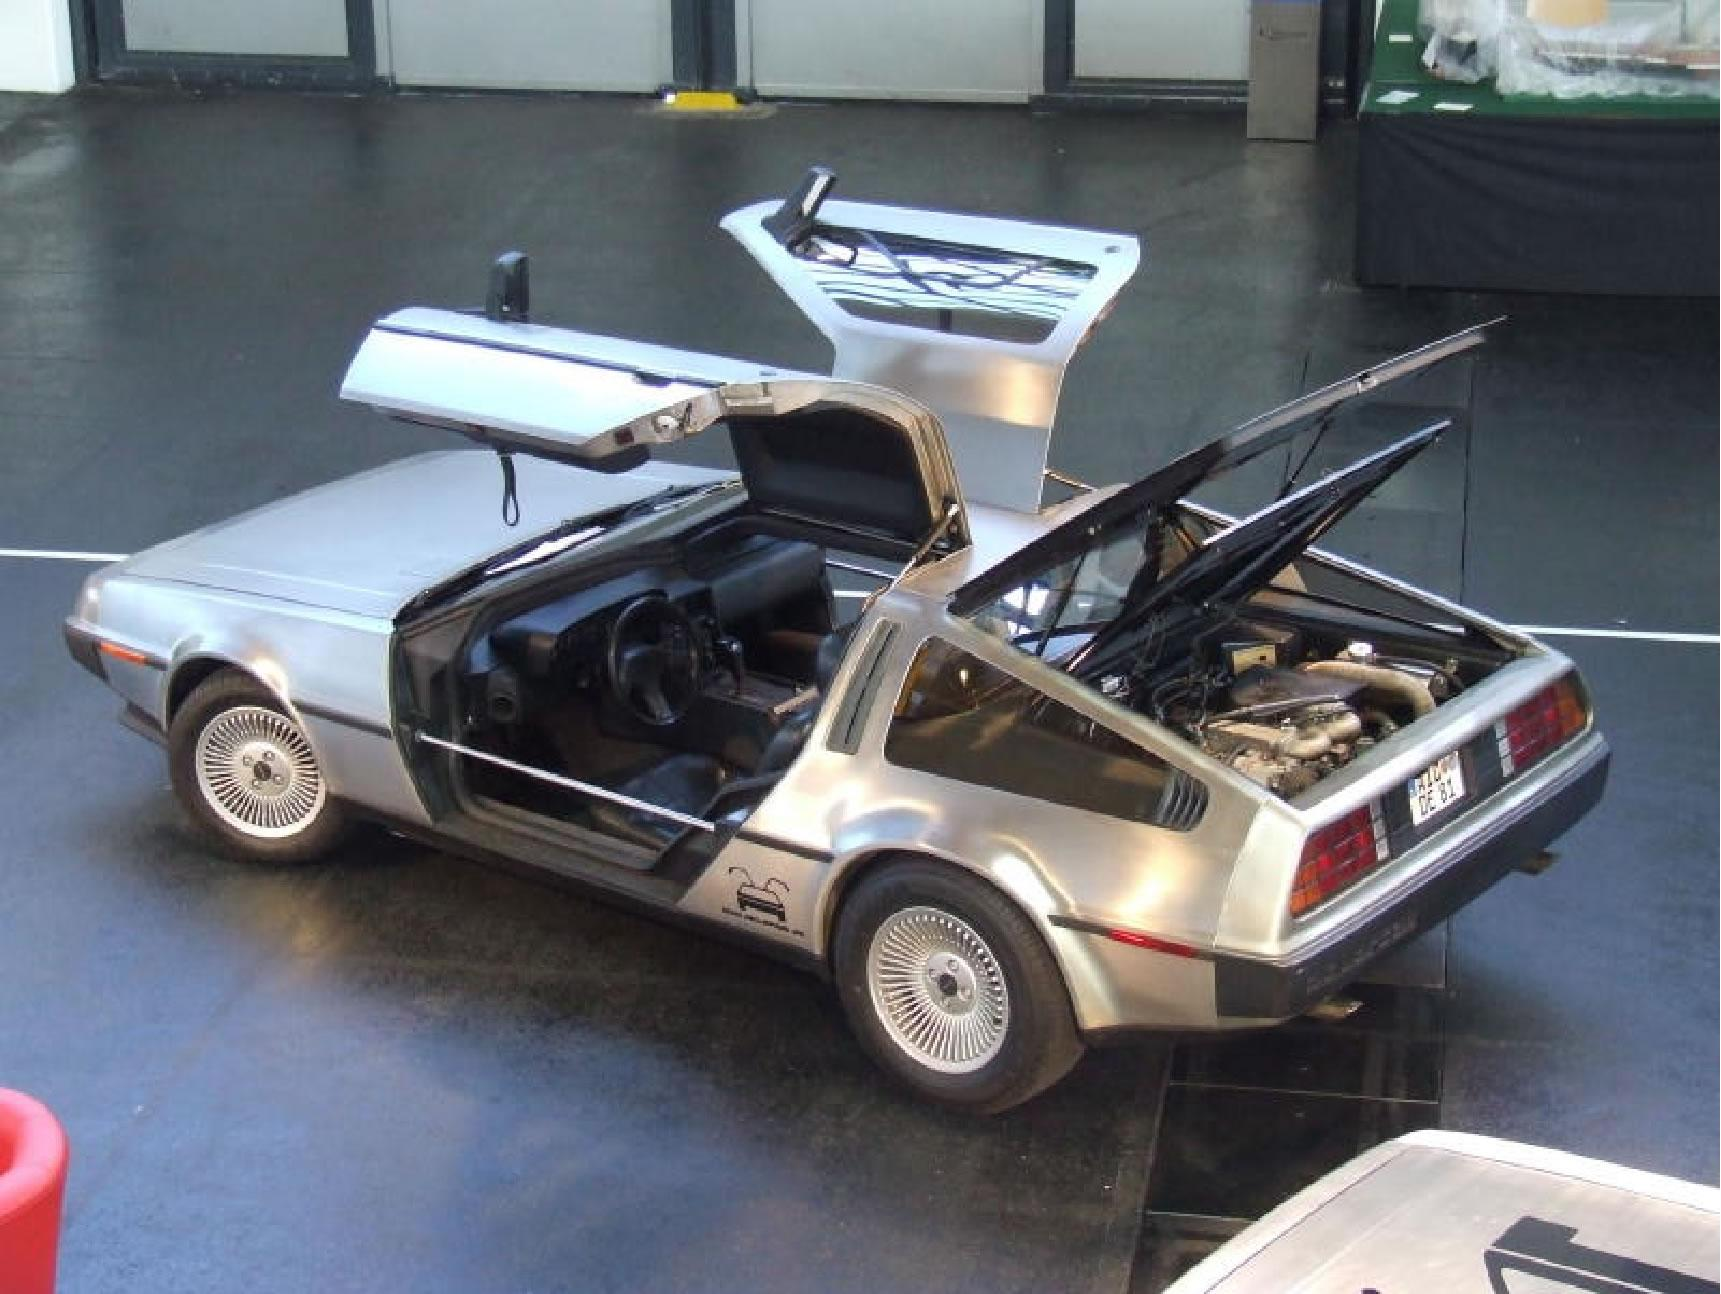 Delorean auf dem Messestand